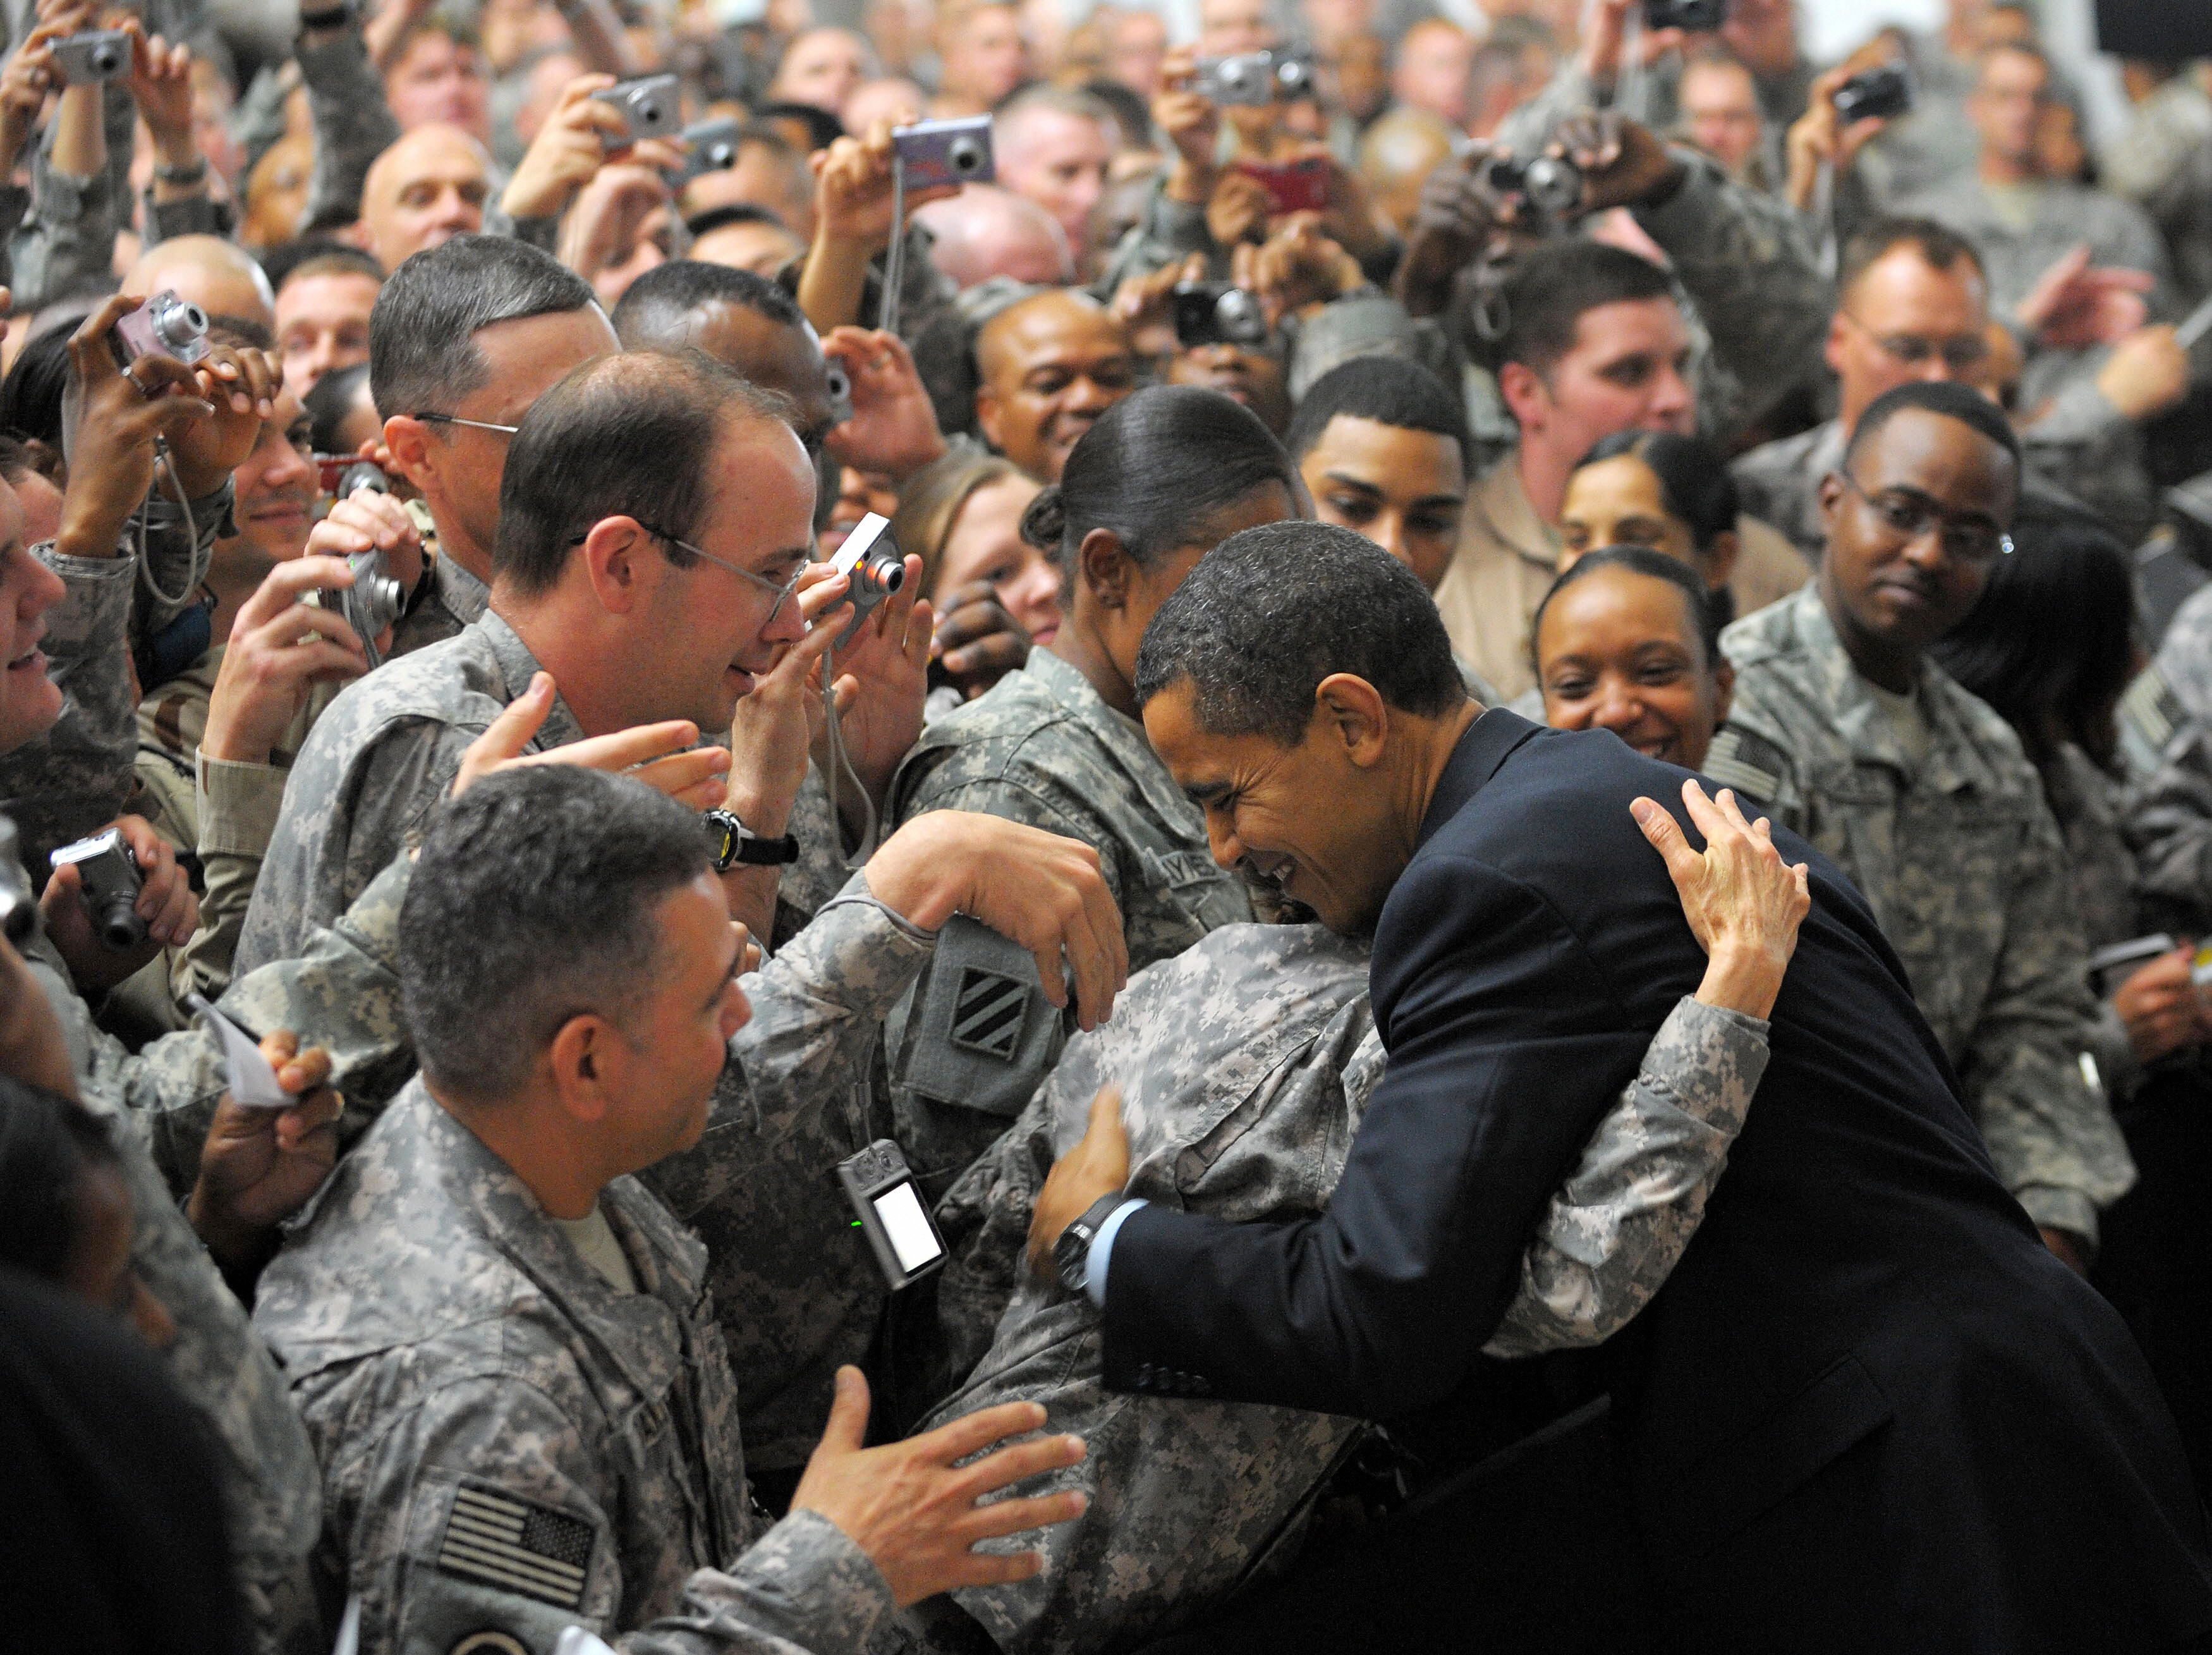 MANDEL NGAN/AFP/Getty Images. US President Barack Obama (R) greets troops during a visit to Camp Victory, just outside Baghdad, on April 7, 2009.